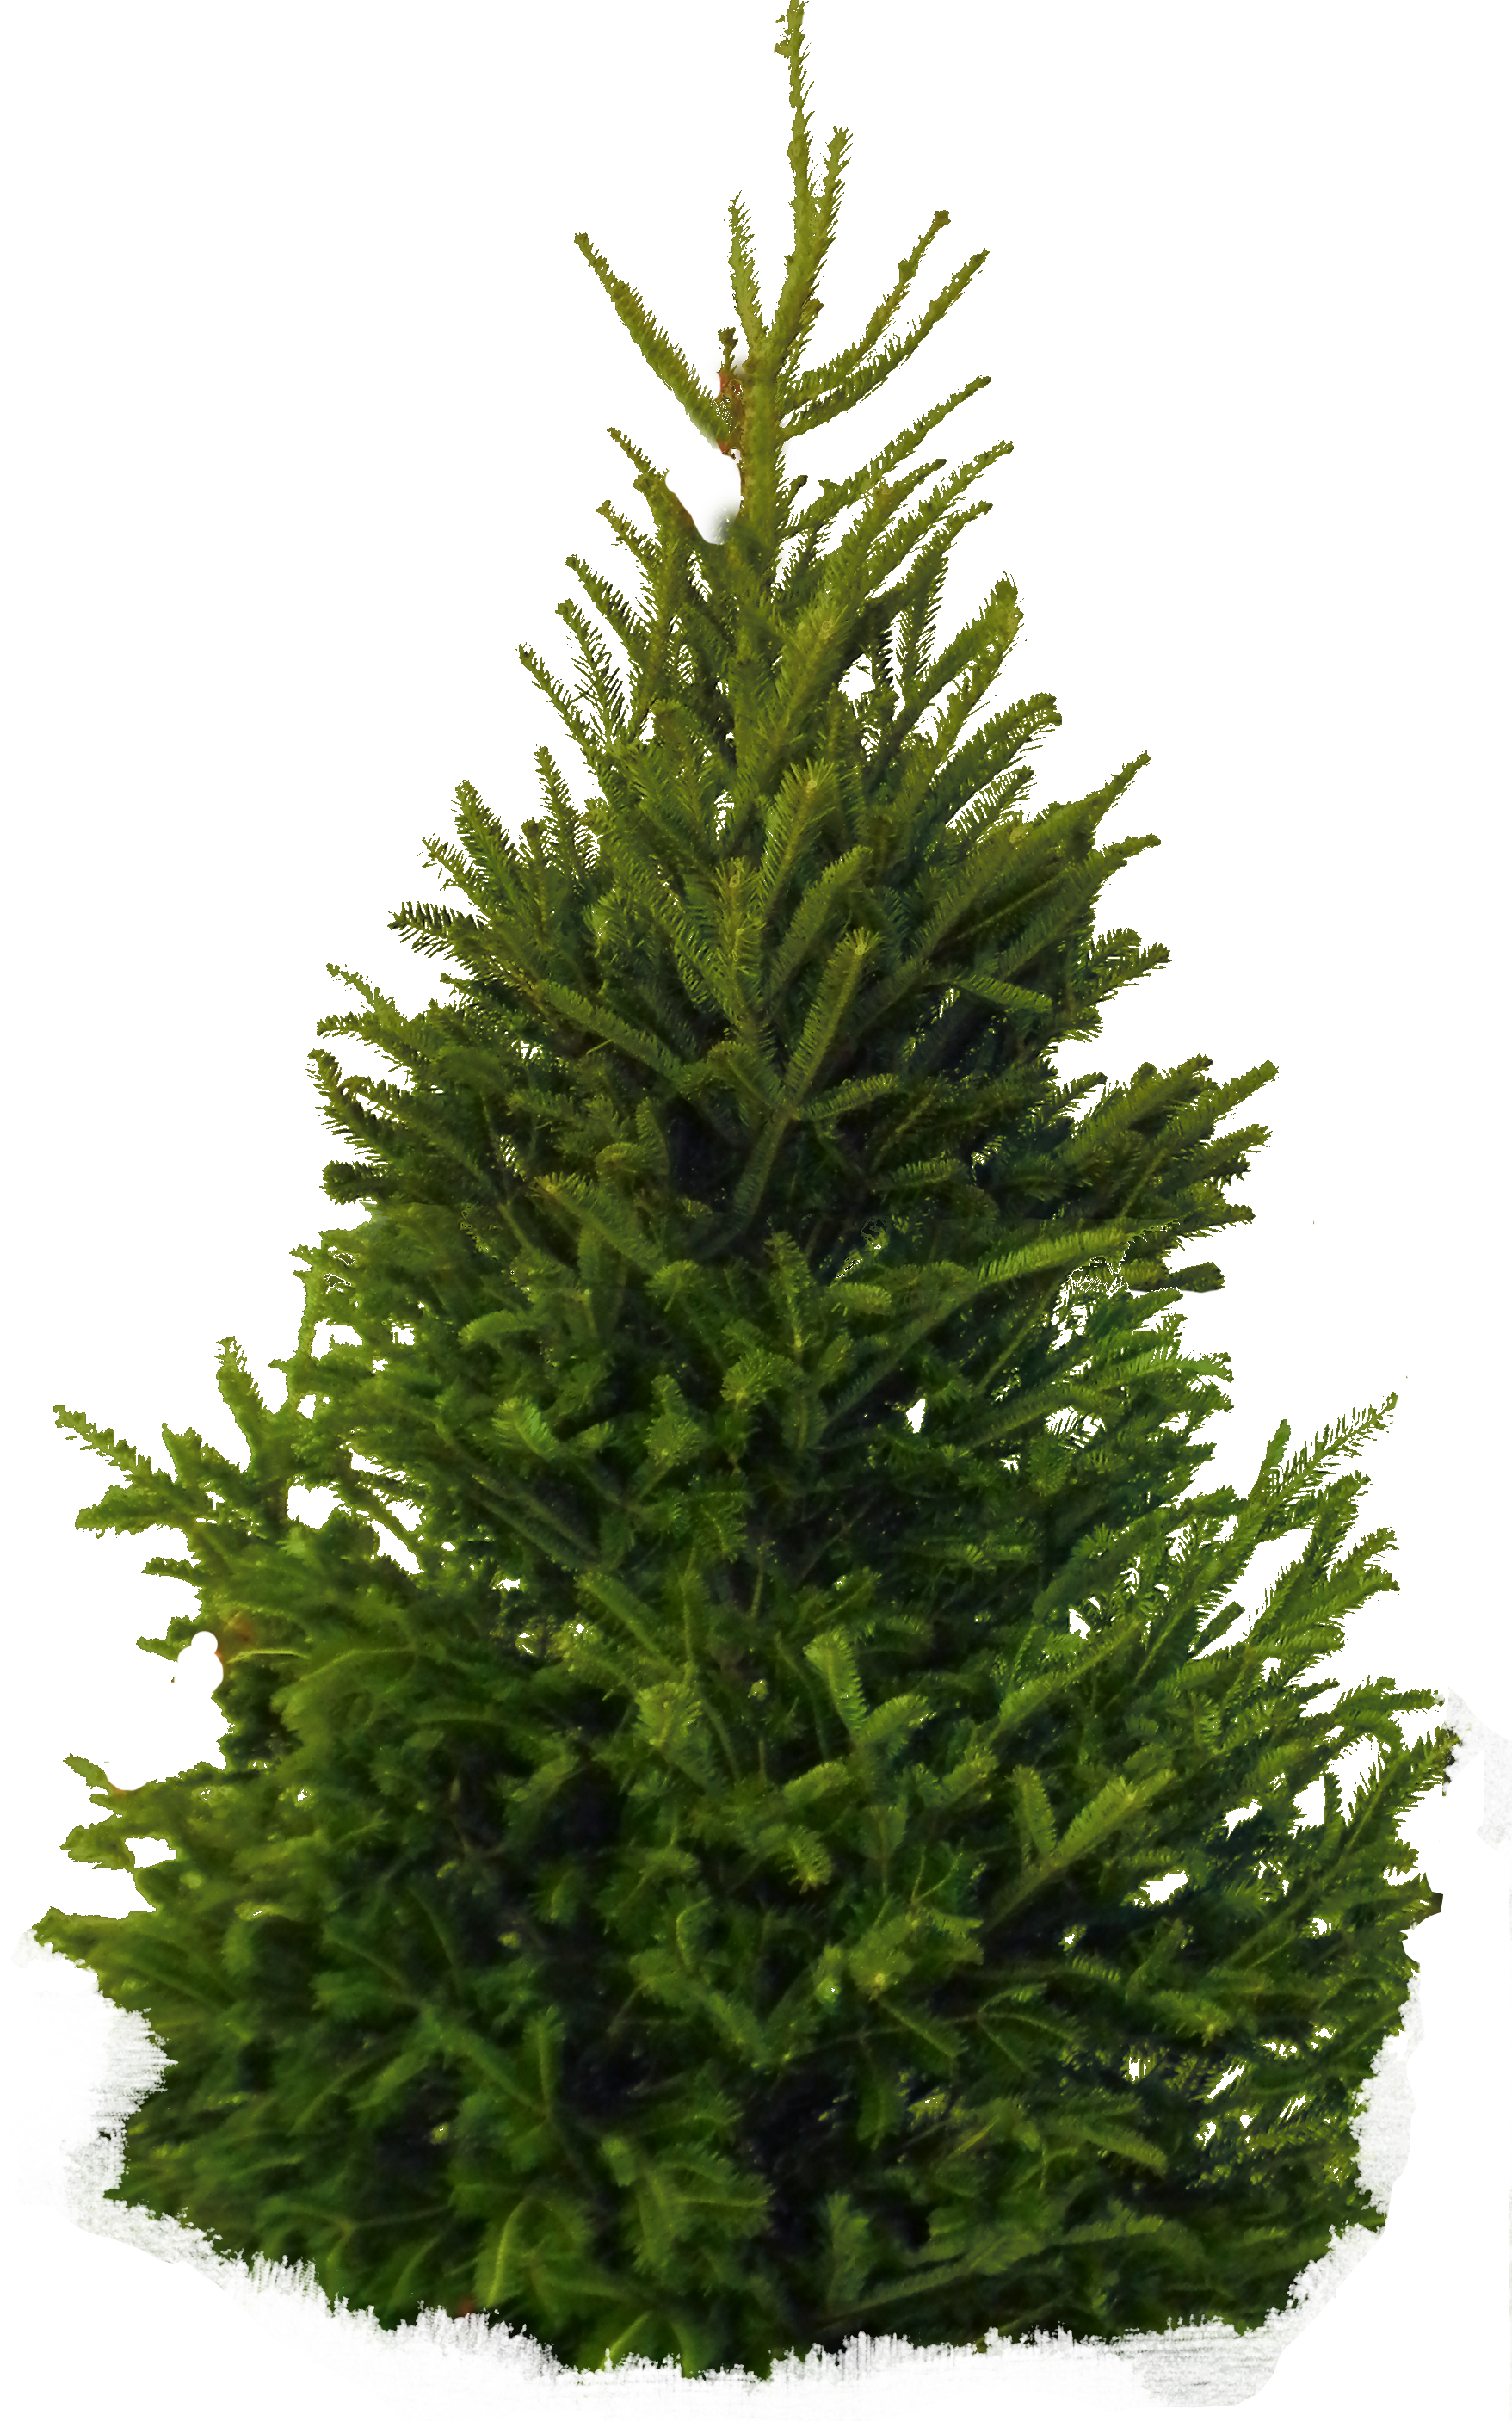 Pine Tree clipart cypress tree Tree png Tree image download